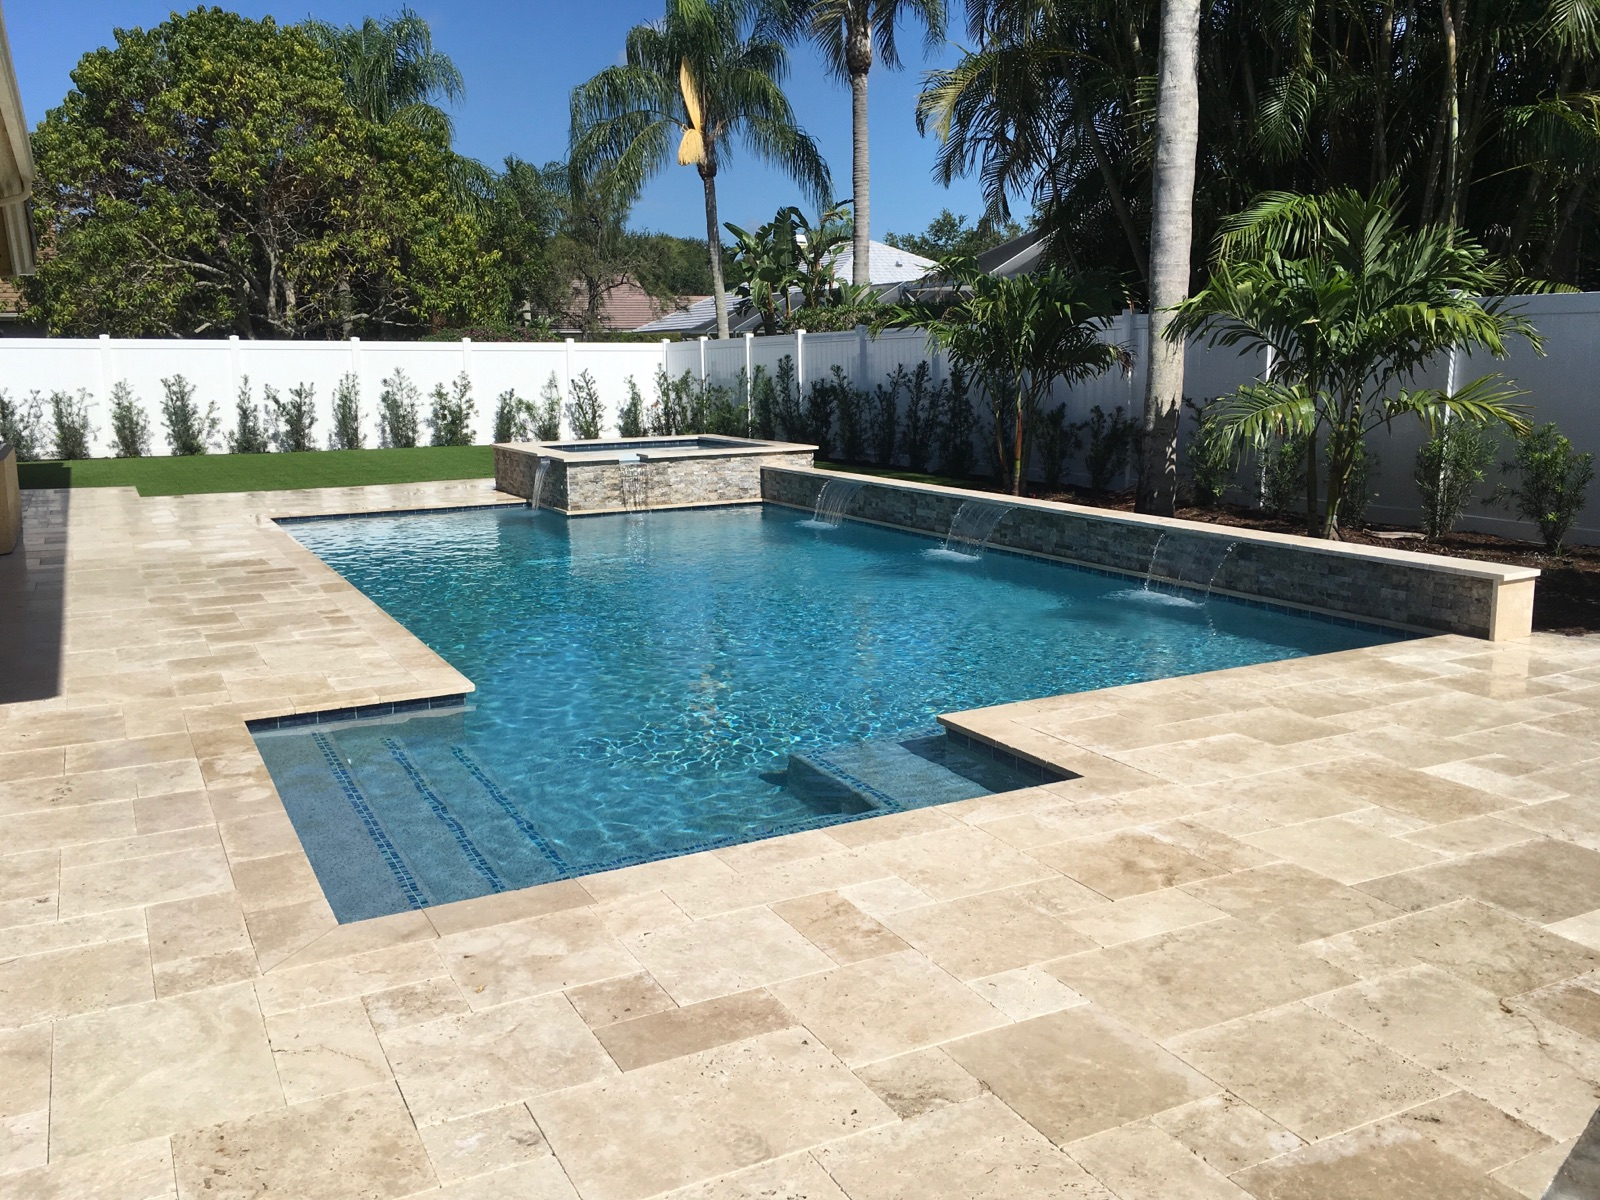 rhr pools of jupiter fl raised spa with water feature